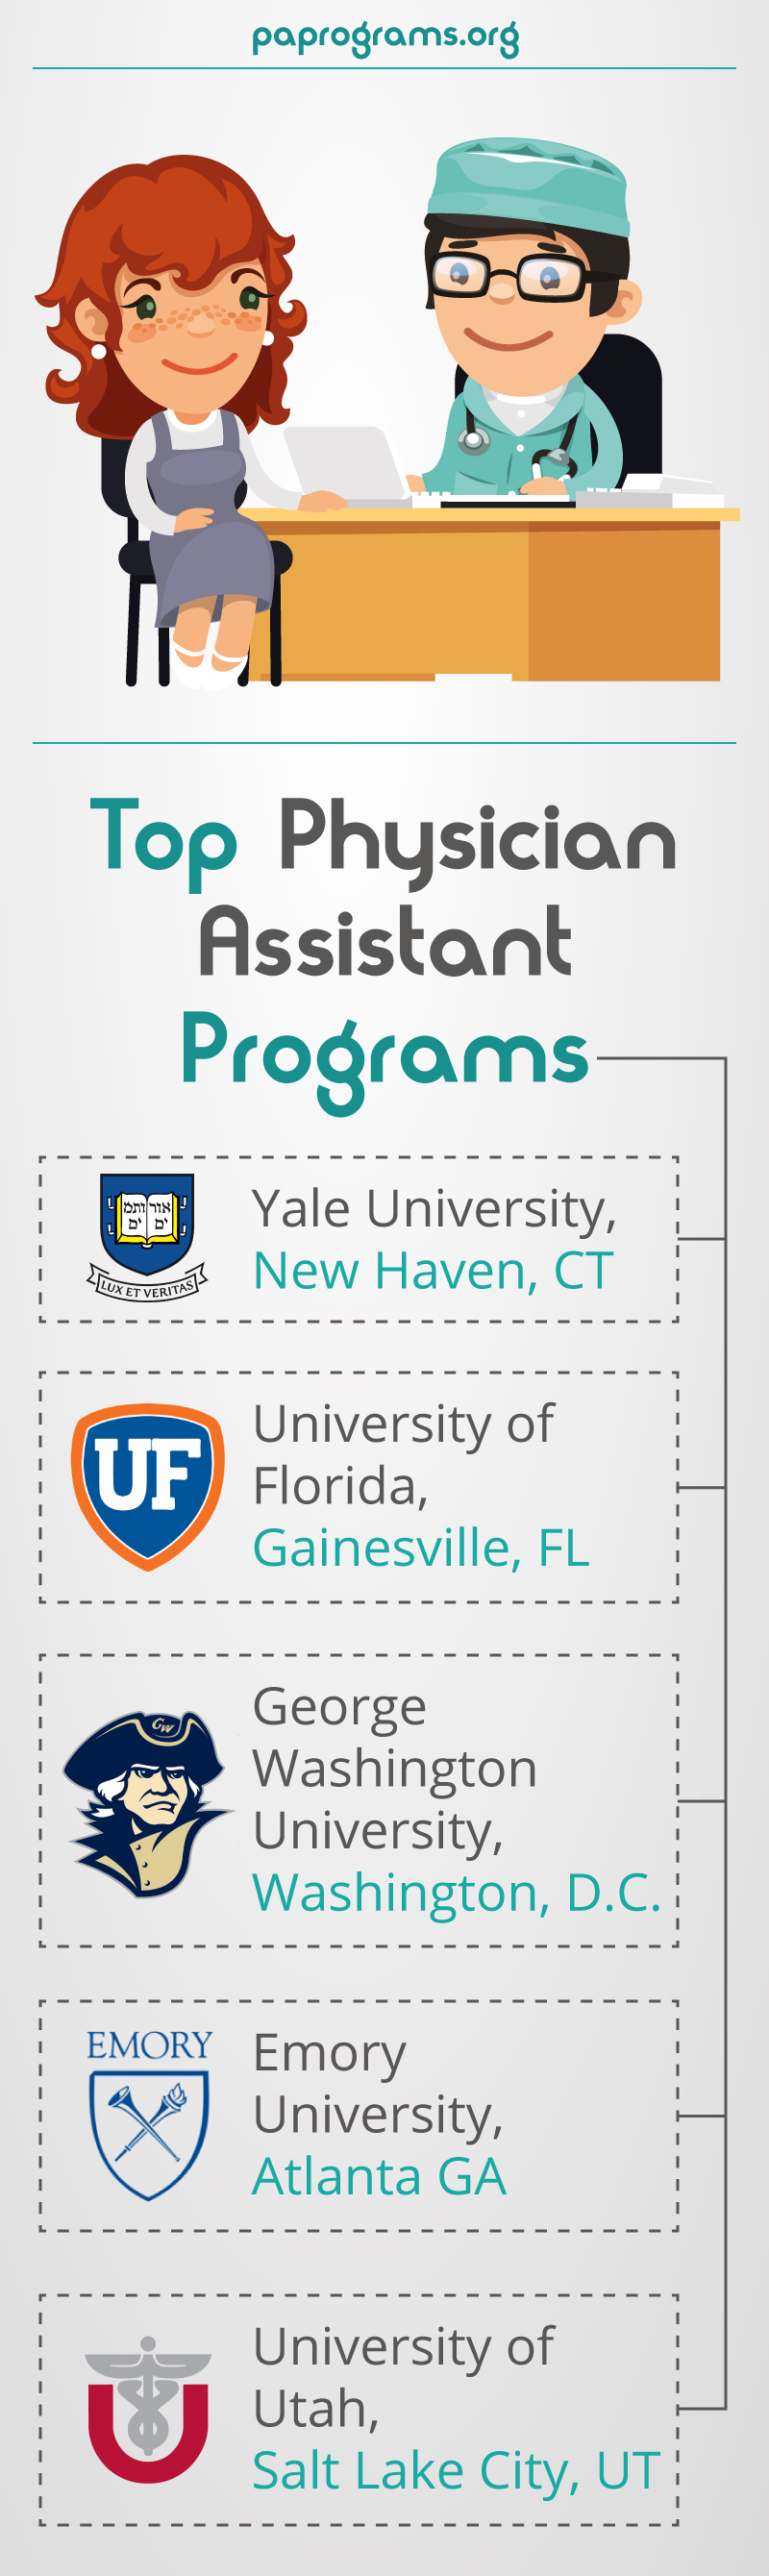 top physician assistant programs